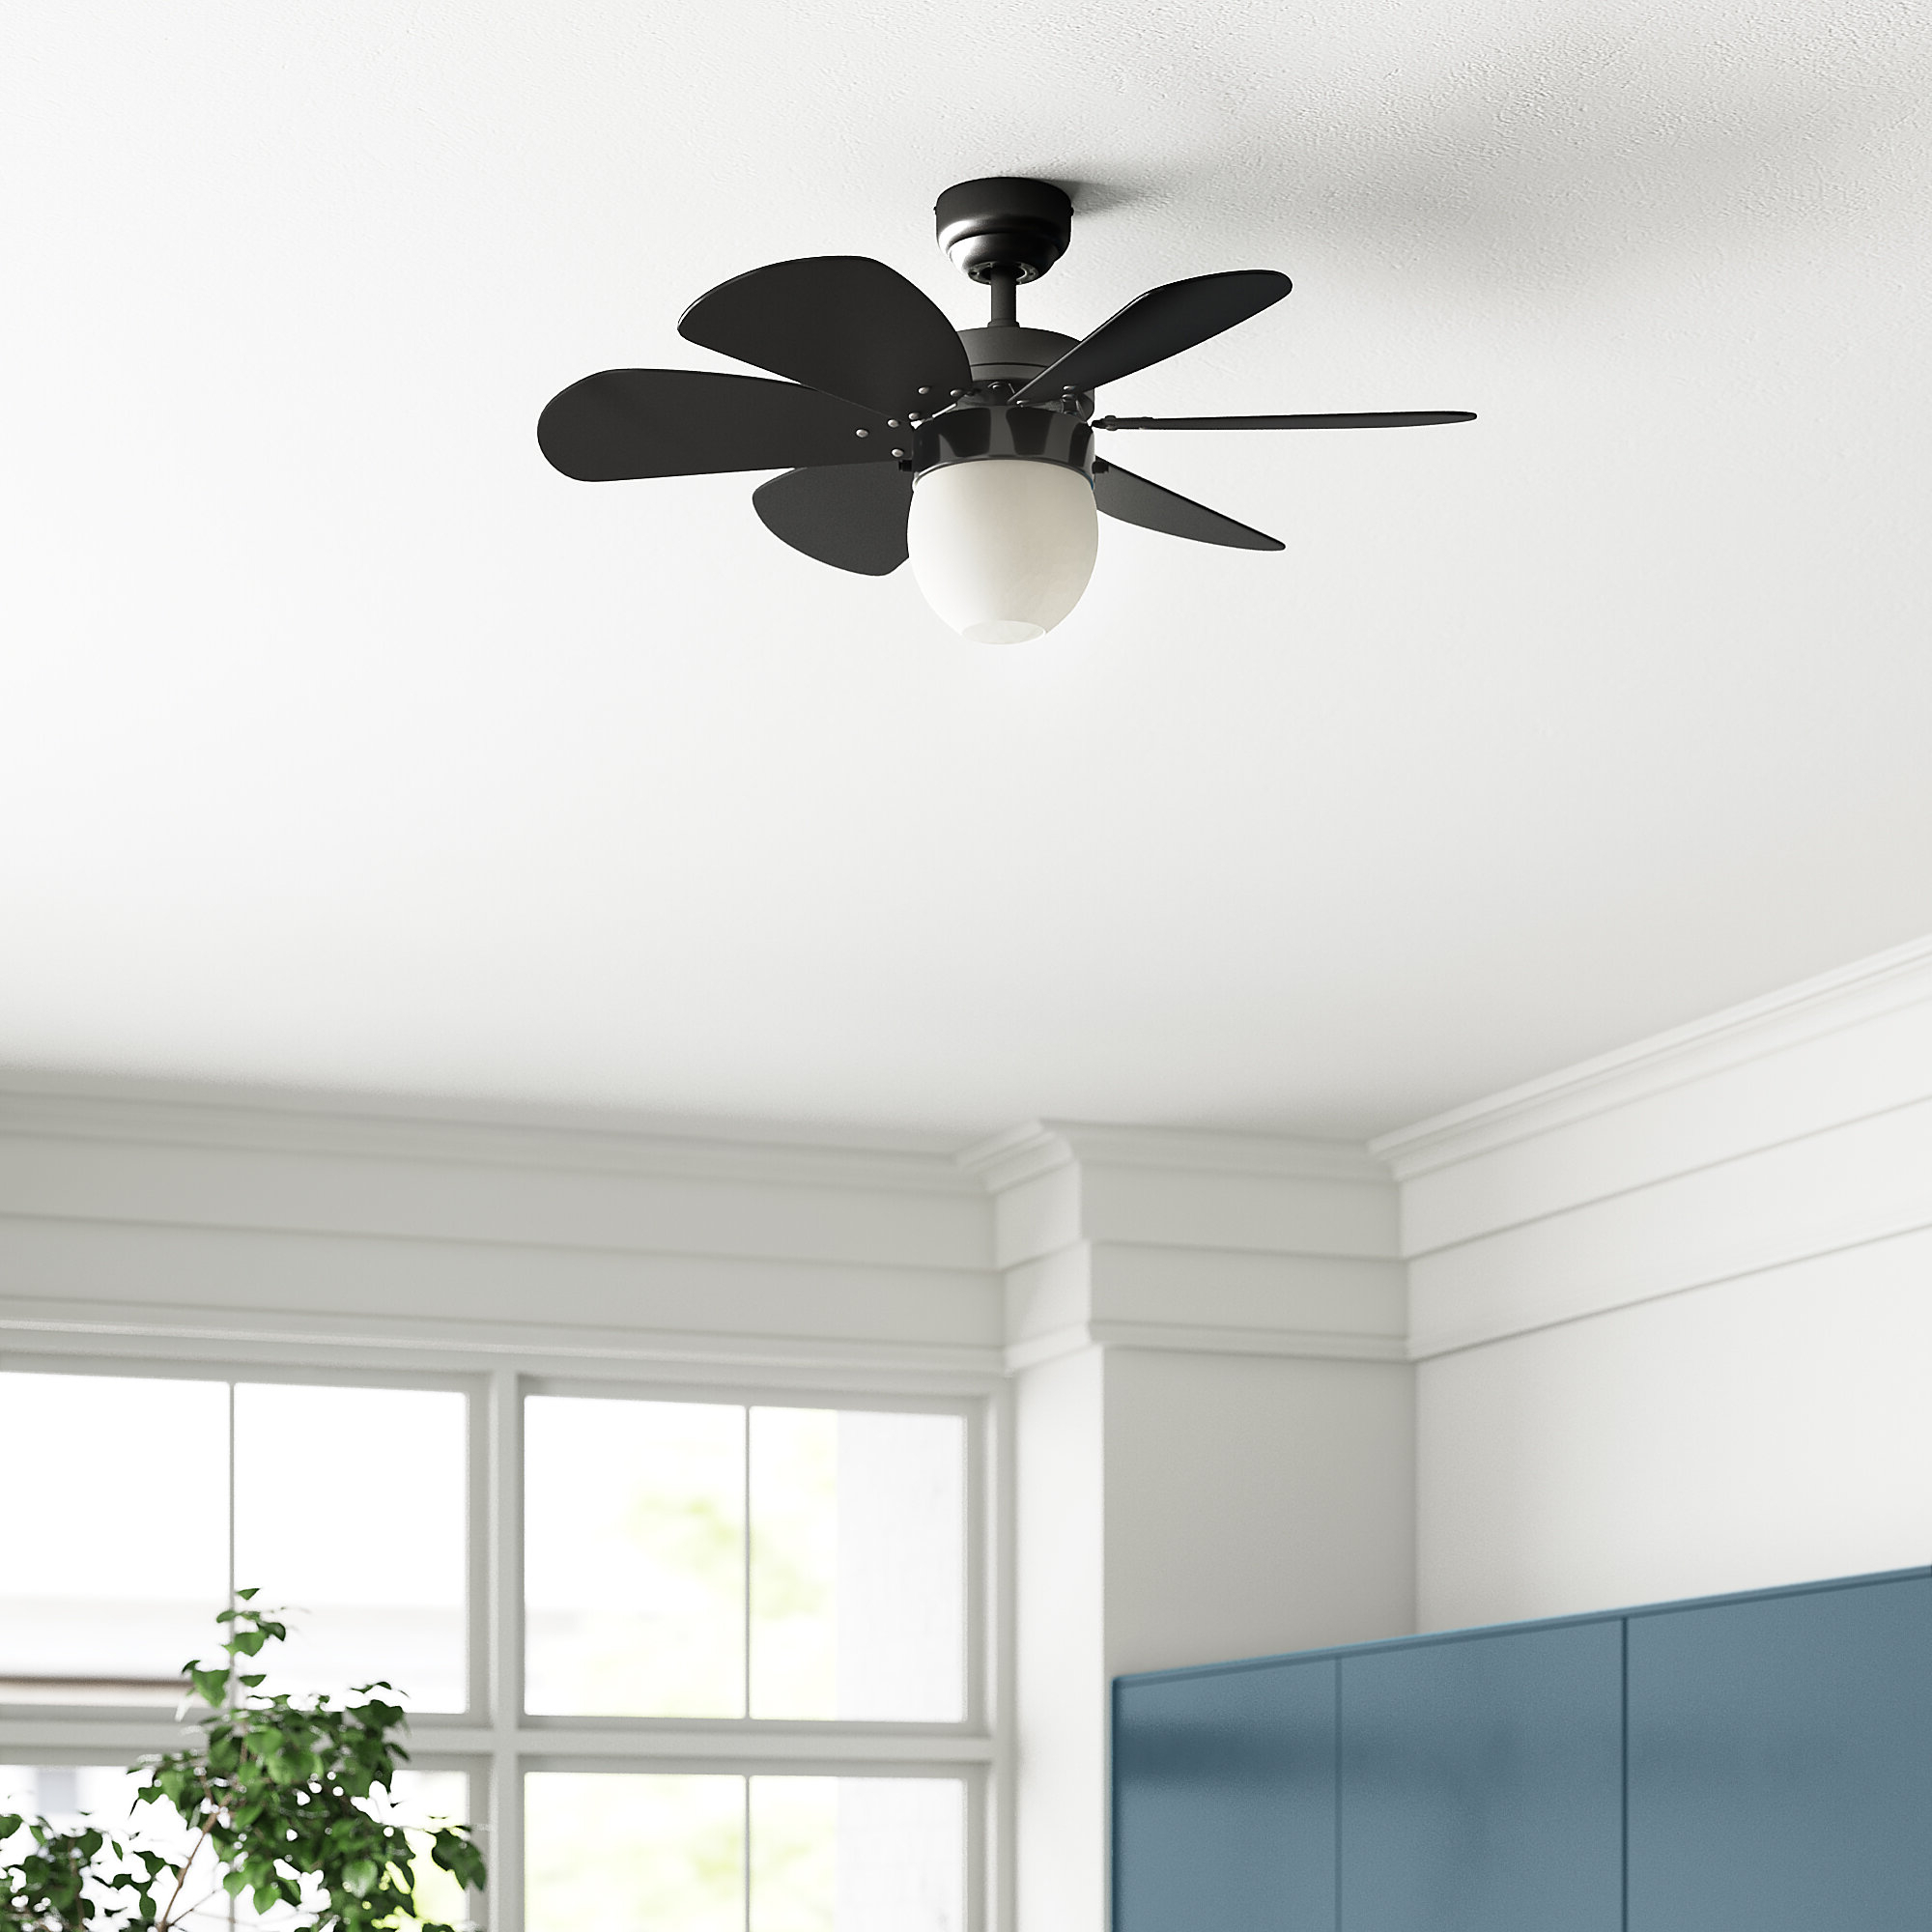 "Corry 6 Blade Ceiling Fans Pertaining To Recent 30"" Caneadea 6 Blade Ceiling Fan, Light Kit Included (View 6 of 20)"